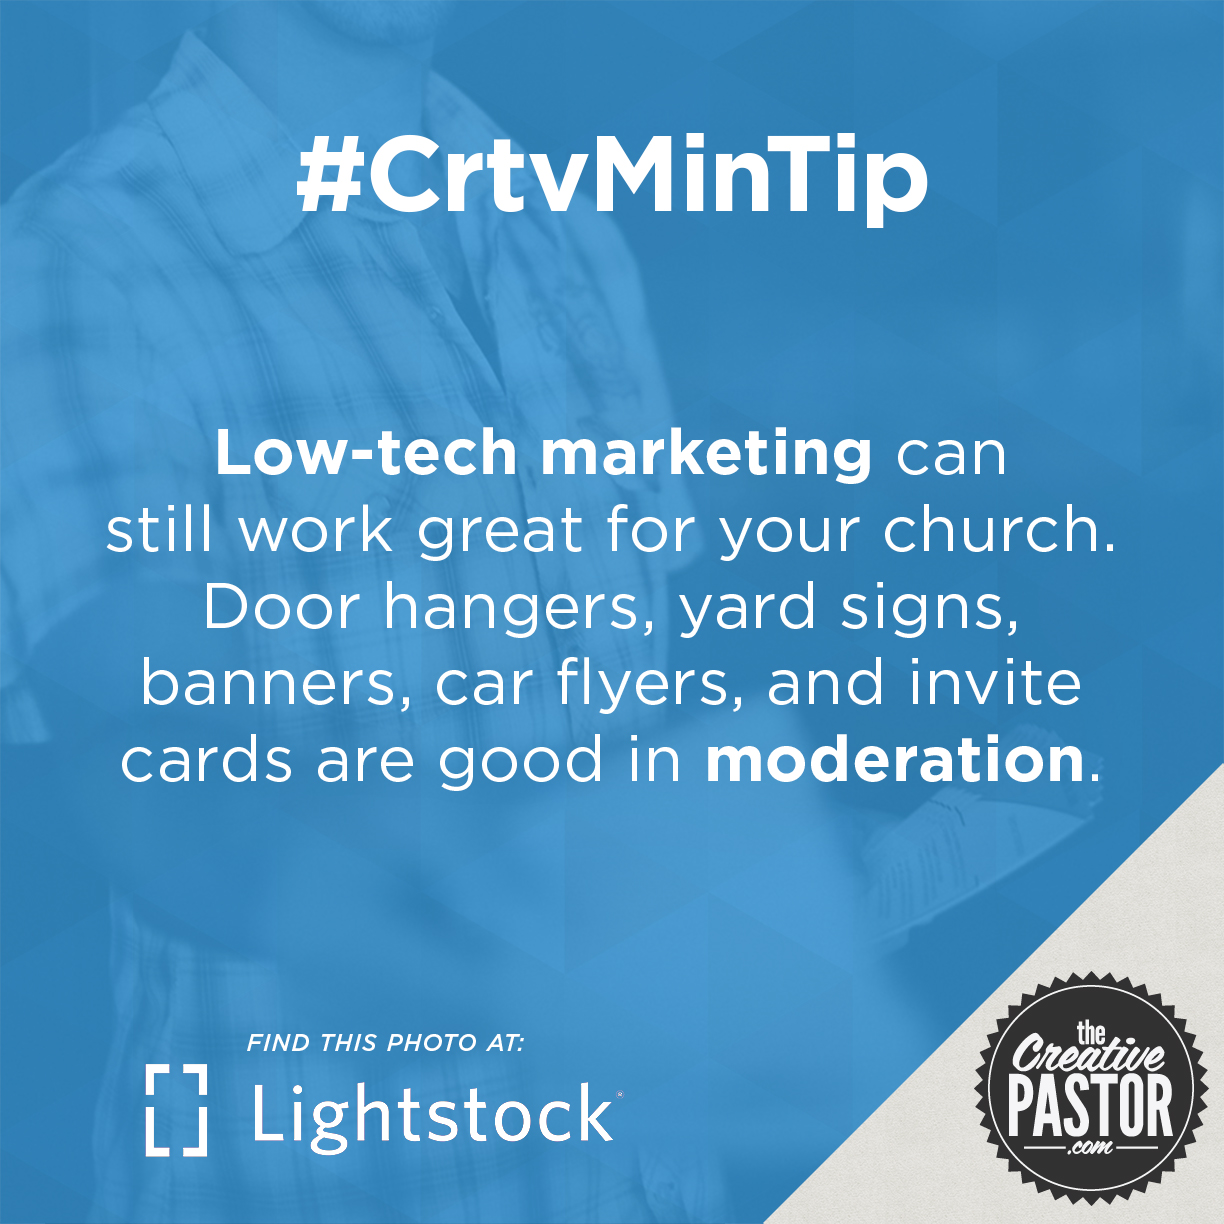 Low-tech marketing can still work great for your church. Door hangers, yard signs, banners, car flyers, and invite cards are good in moderation.